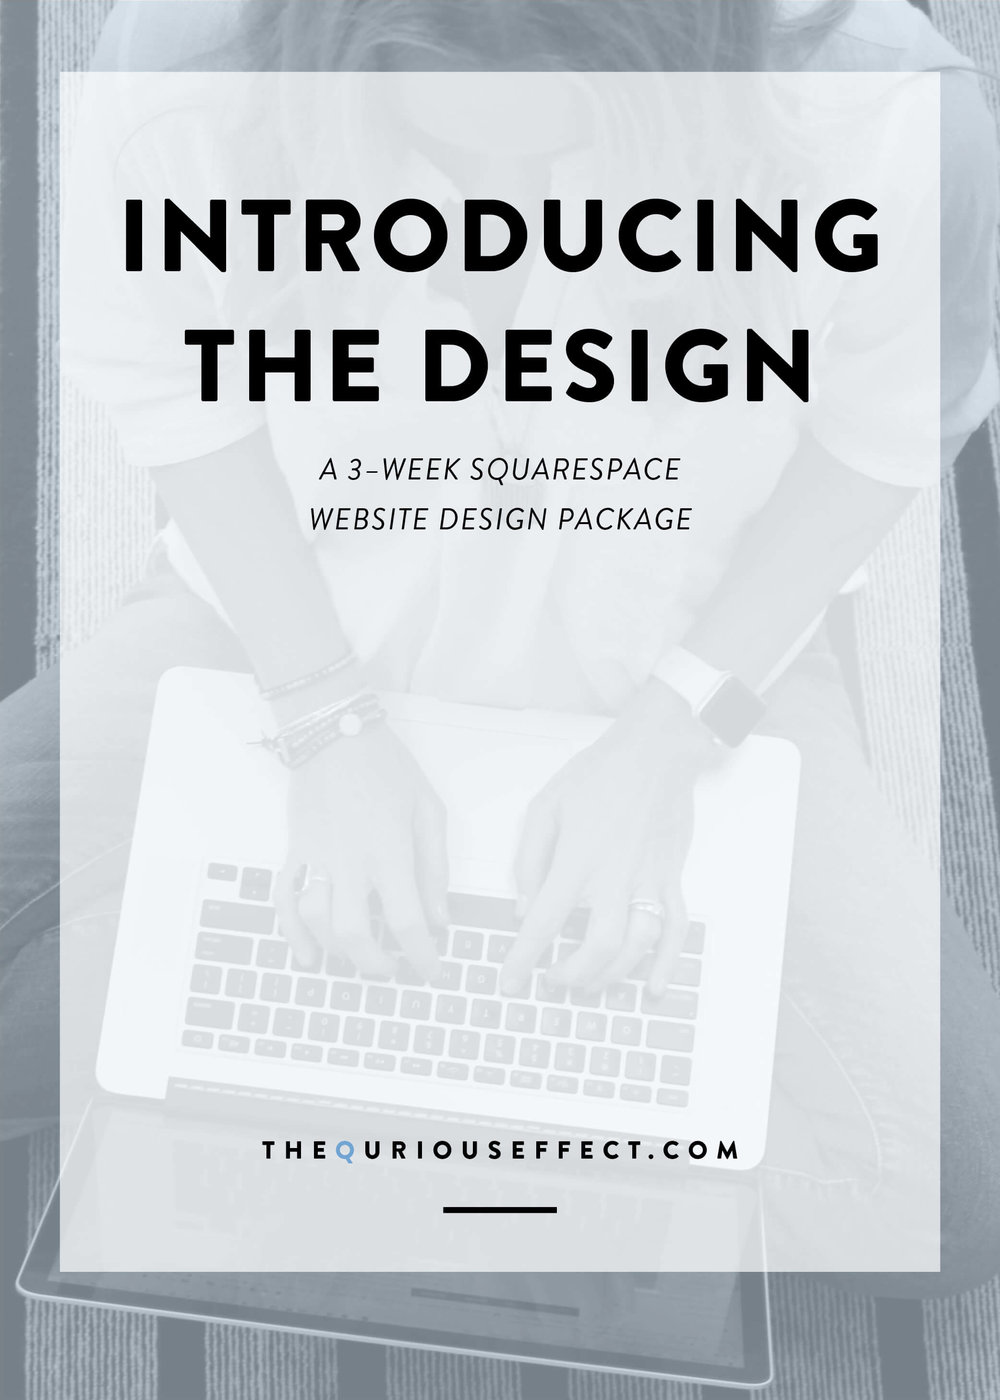 The Design is a three-week client focused, goal-driven Squarespace website design package for heart centered entrepreneurs. Offered by The Qurious Effect, a Squarespace webdite designer